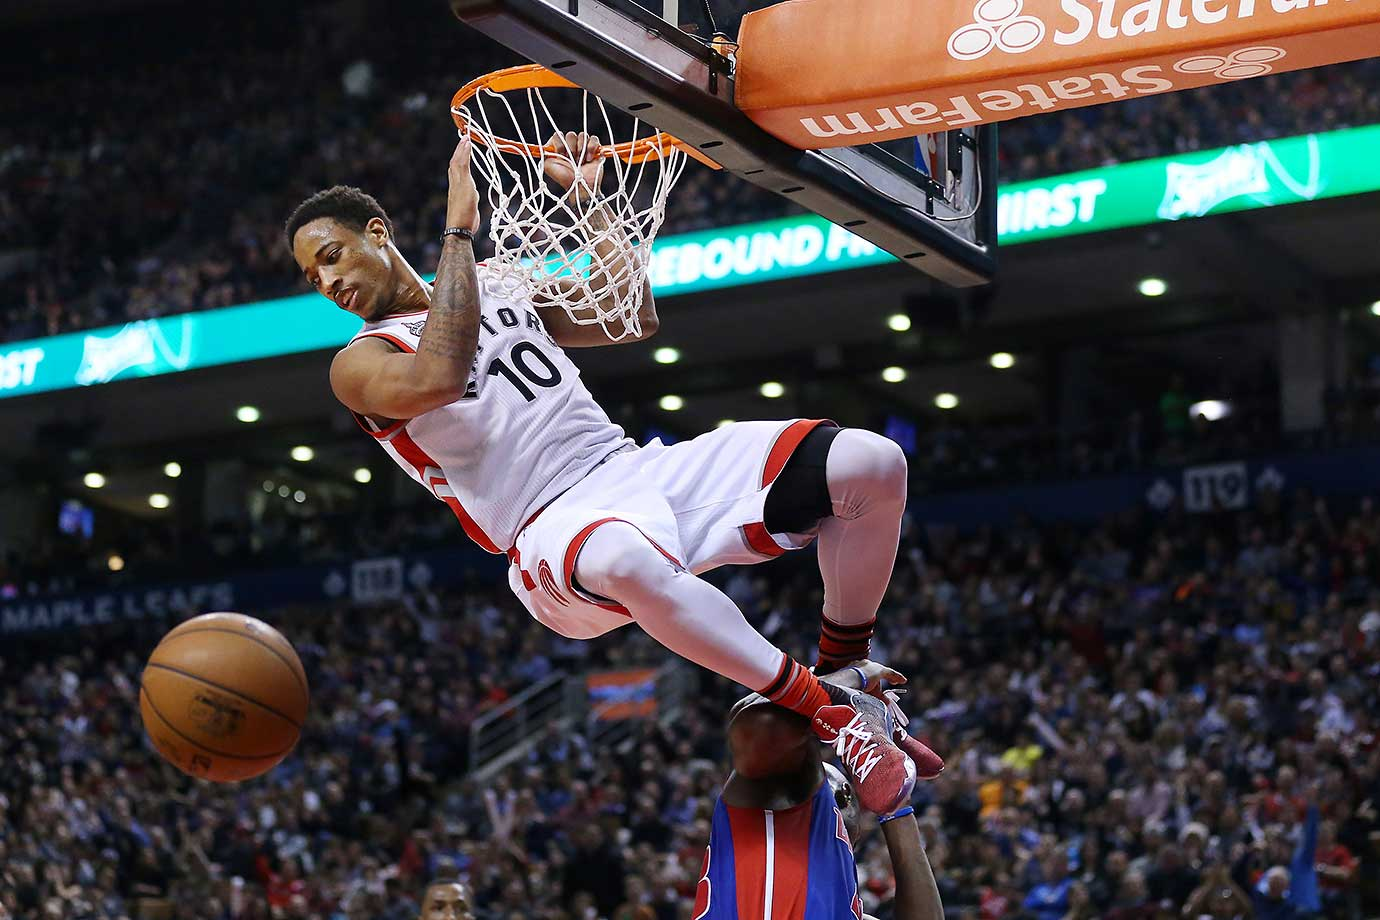 DeMar DeRozan waits until it is safe to come down after a dunk at the Air Canada Centre in Toronto.